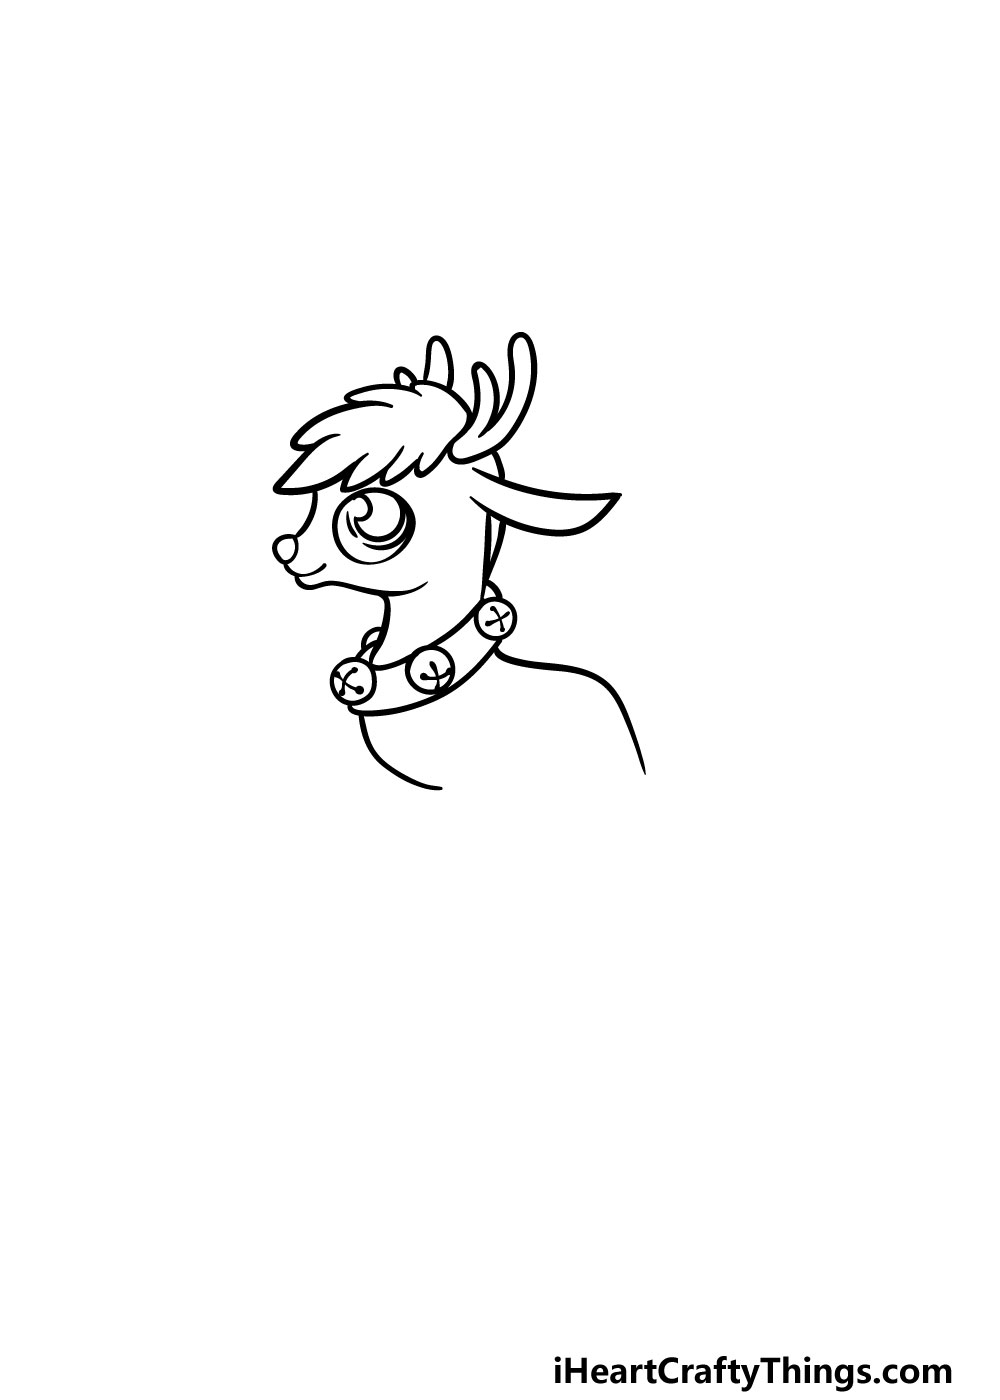 drawing Rudolph step 2